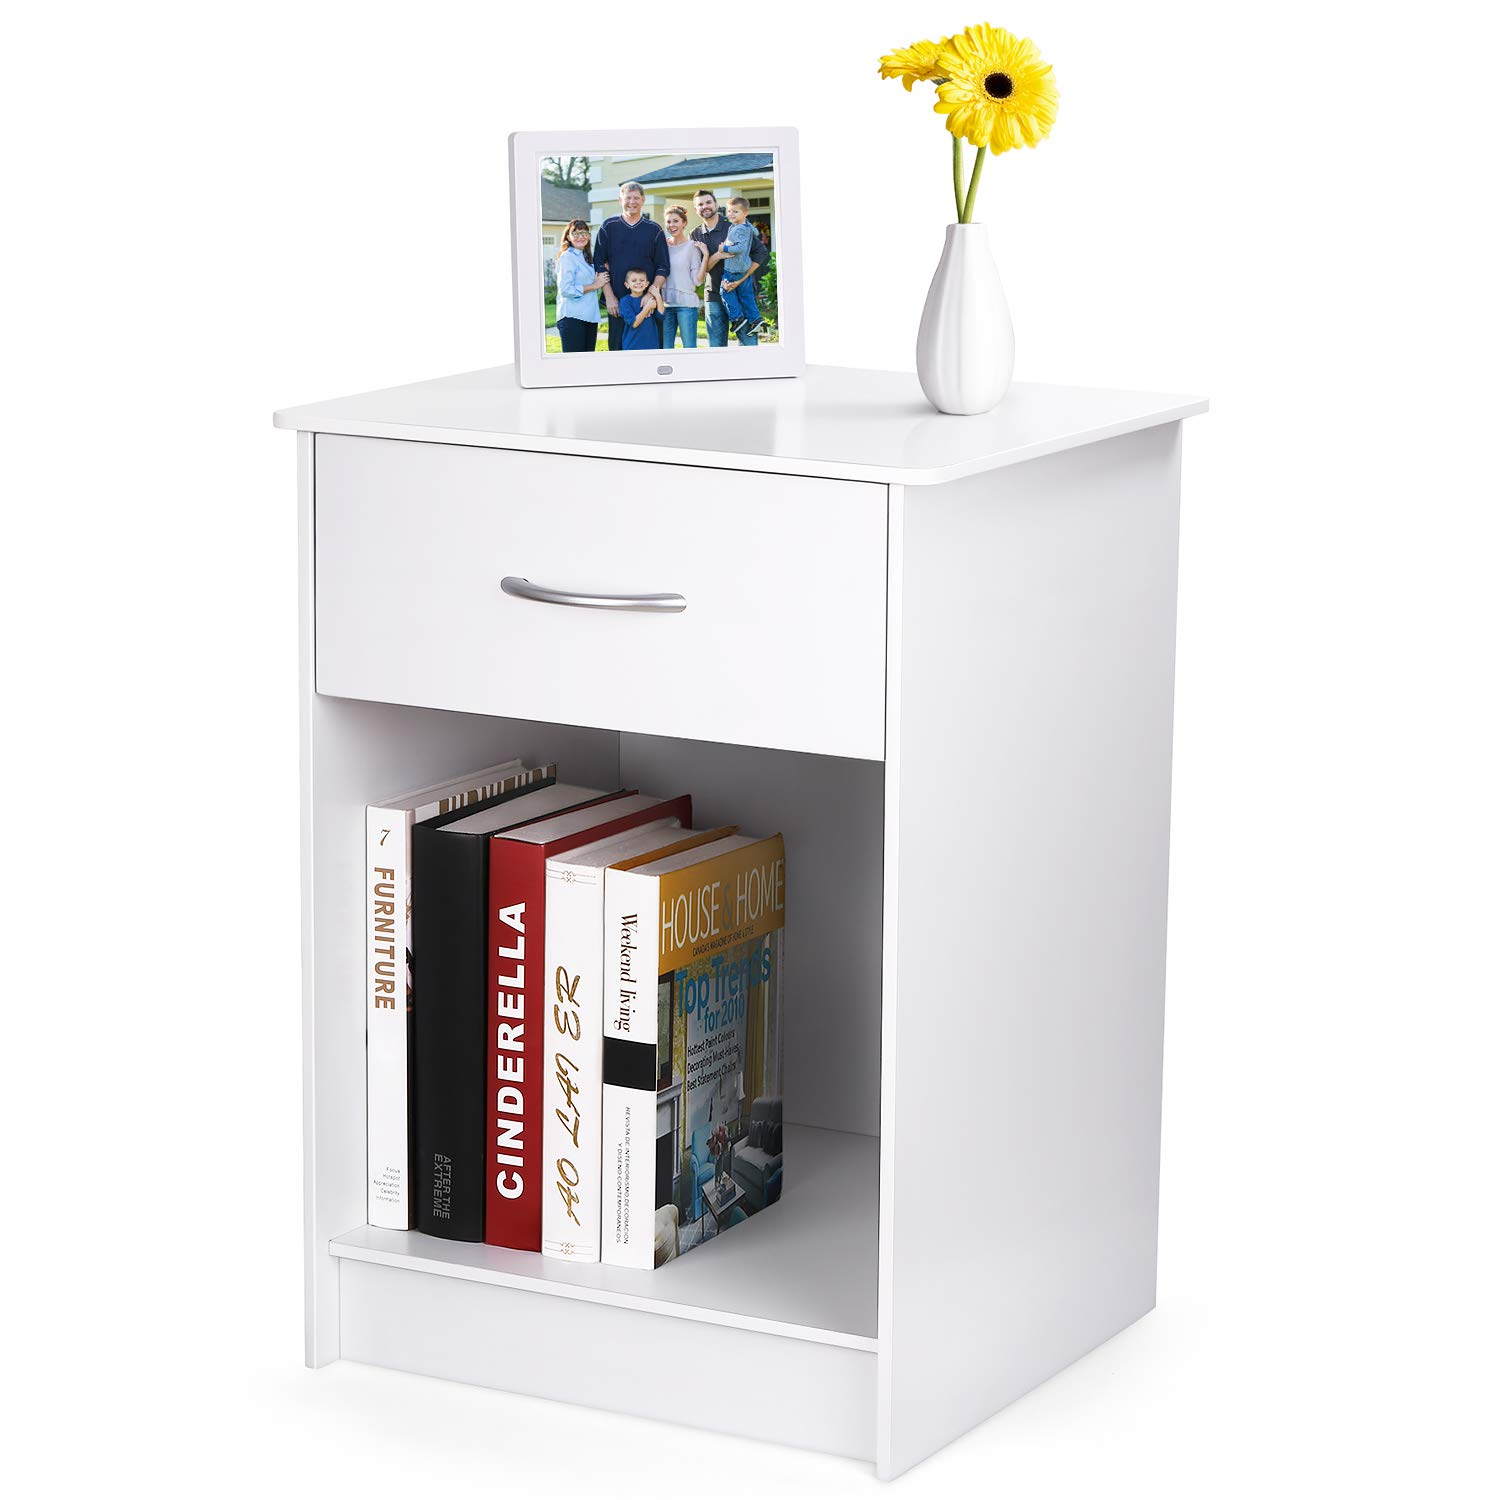 INTEY White Nightstand, Bedside Table with Drawer and Storage Shelf, End Table for Bedroom Living Room Home Furniture by INTEY